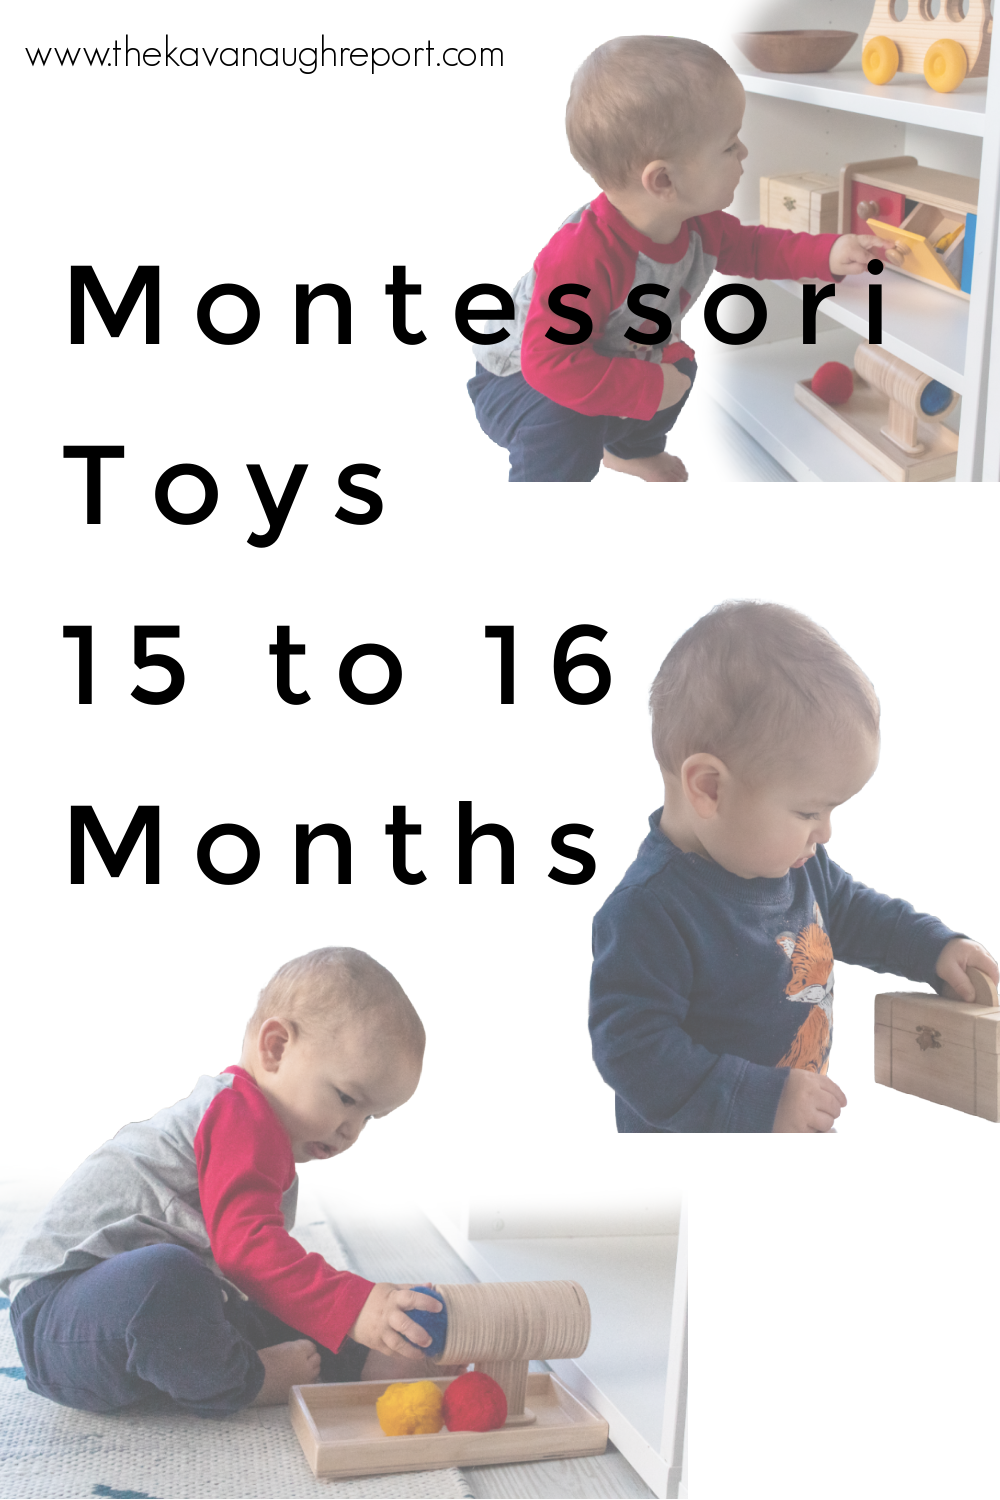 Montessori toddler toys for 15 and 16-month-olds. These educational and fun toys are perfect for focused playtime with toddlers.